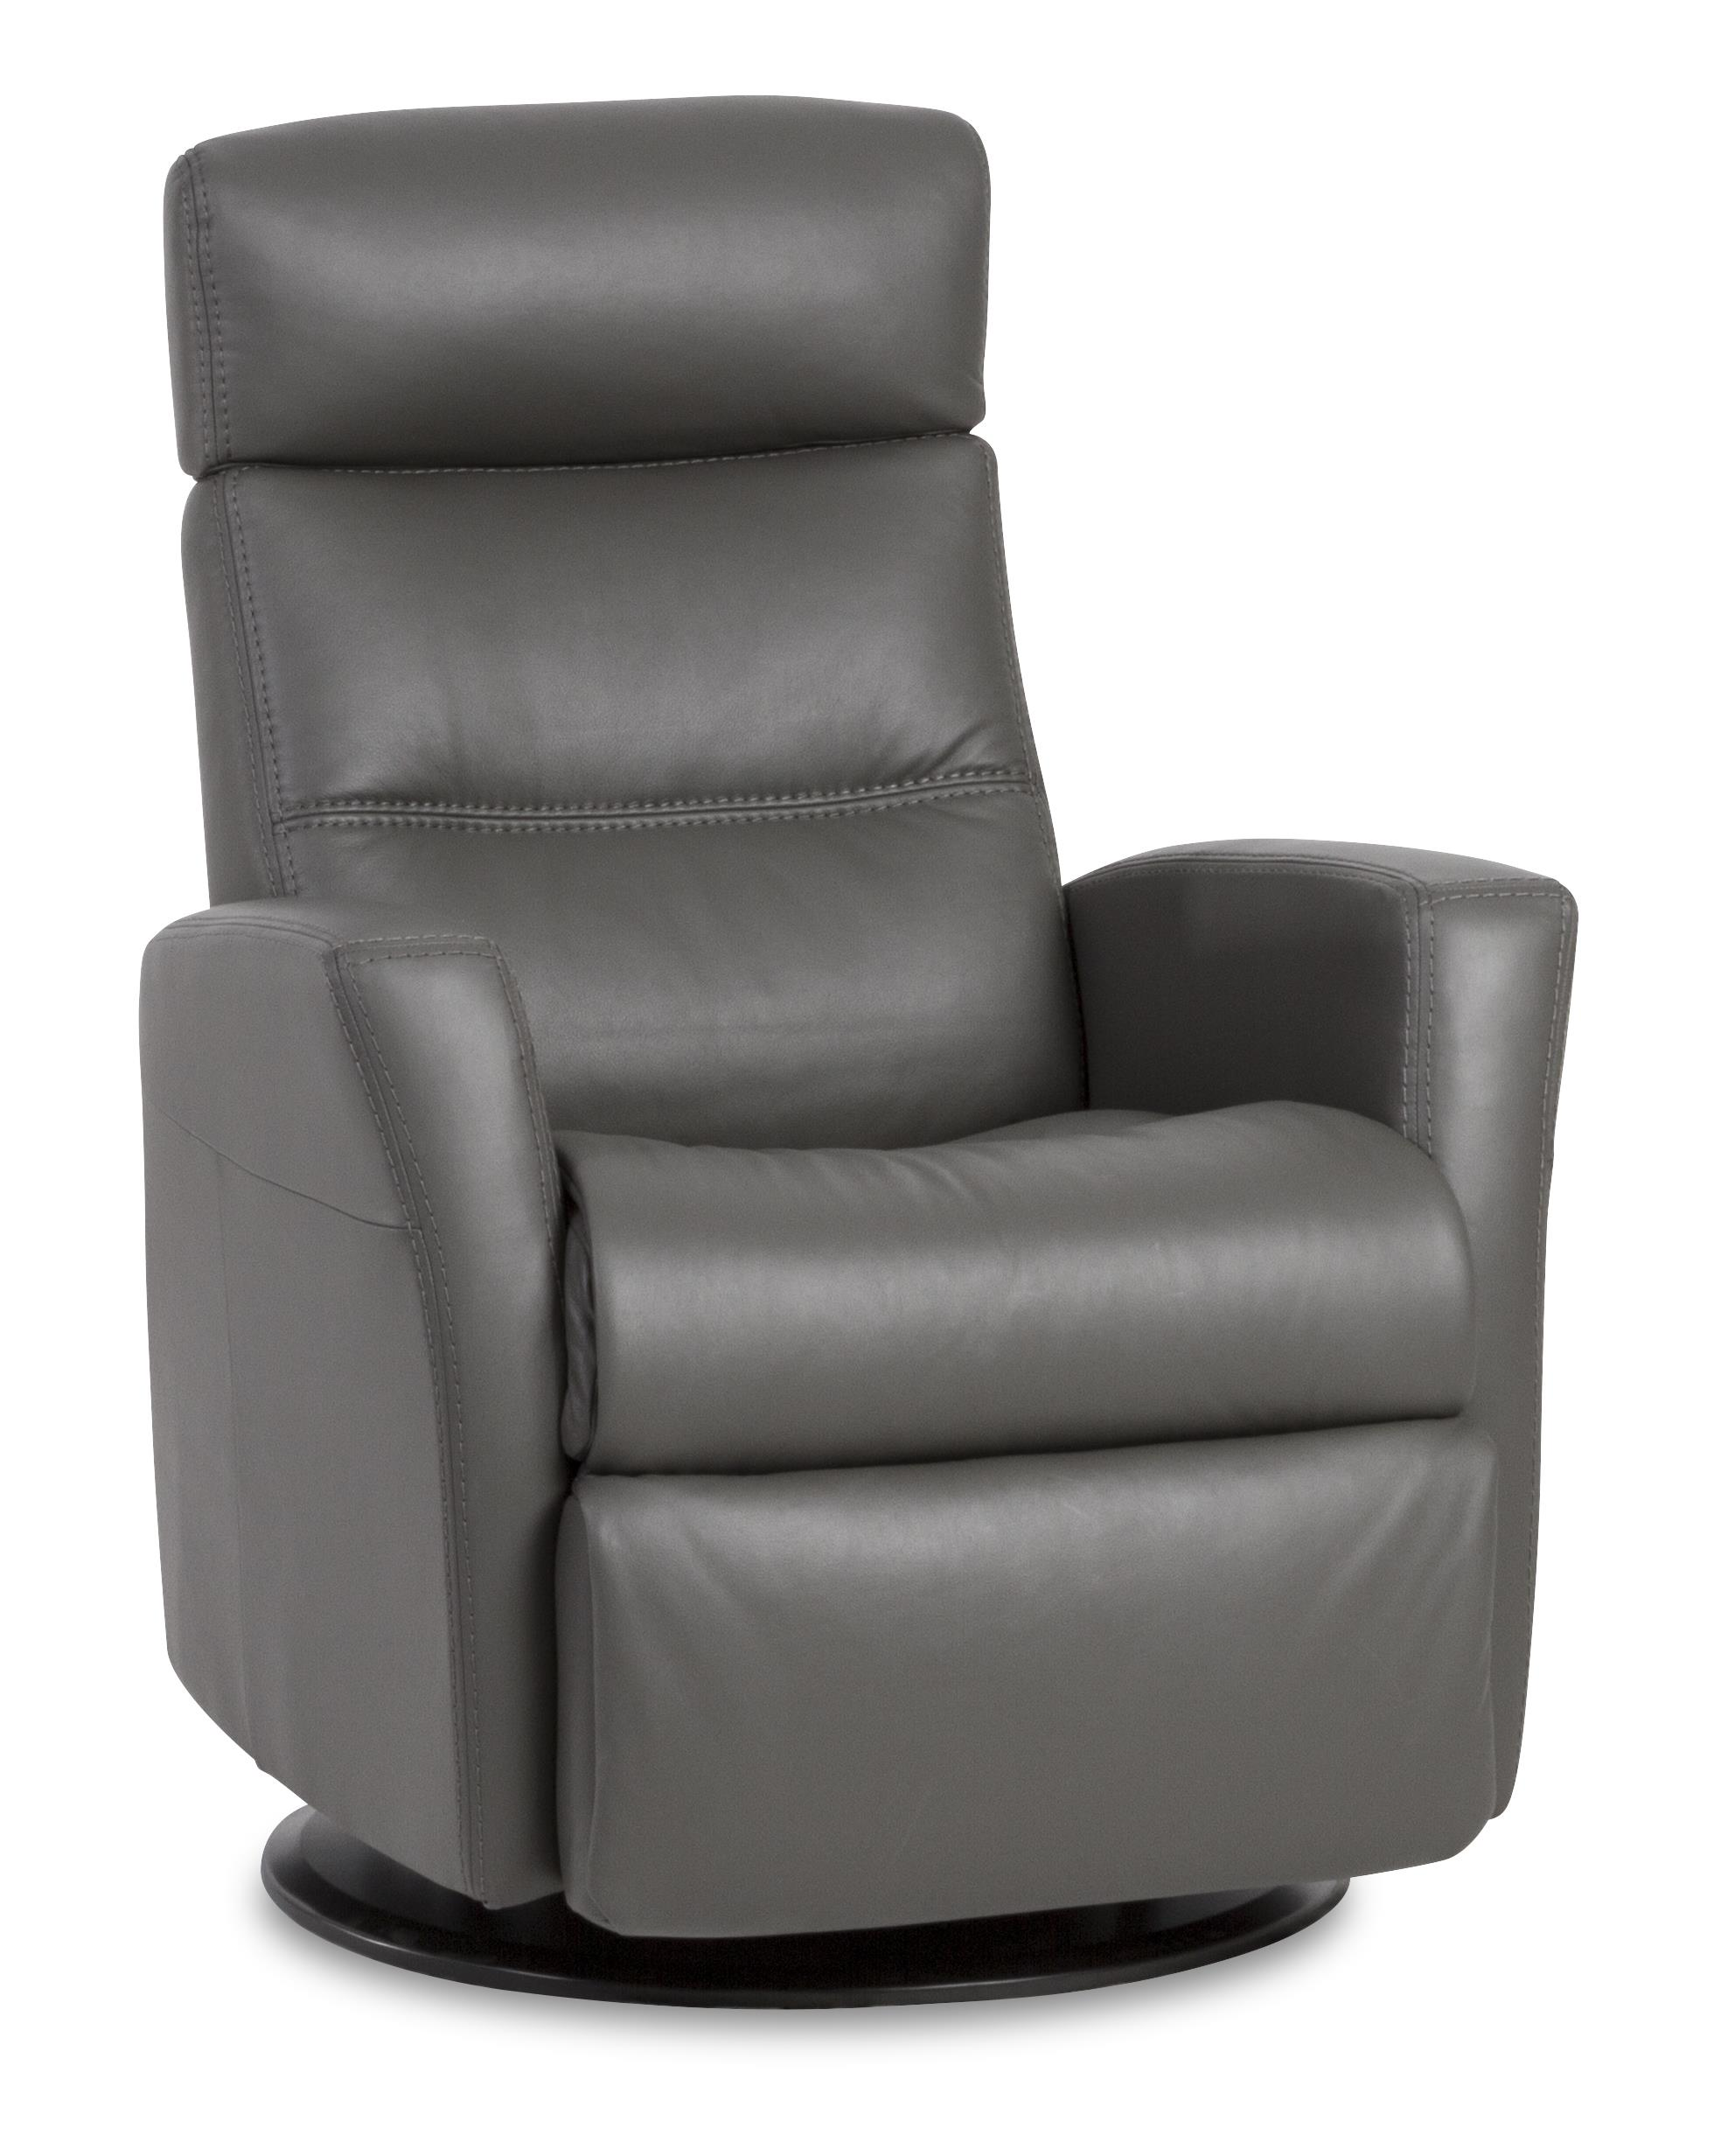 Reclining Chairs Toronto Compact Recliner Chair Canada Compact Recliner Chair Lazy